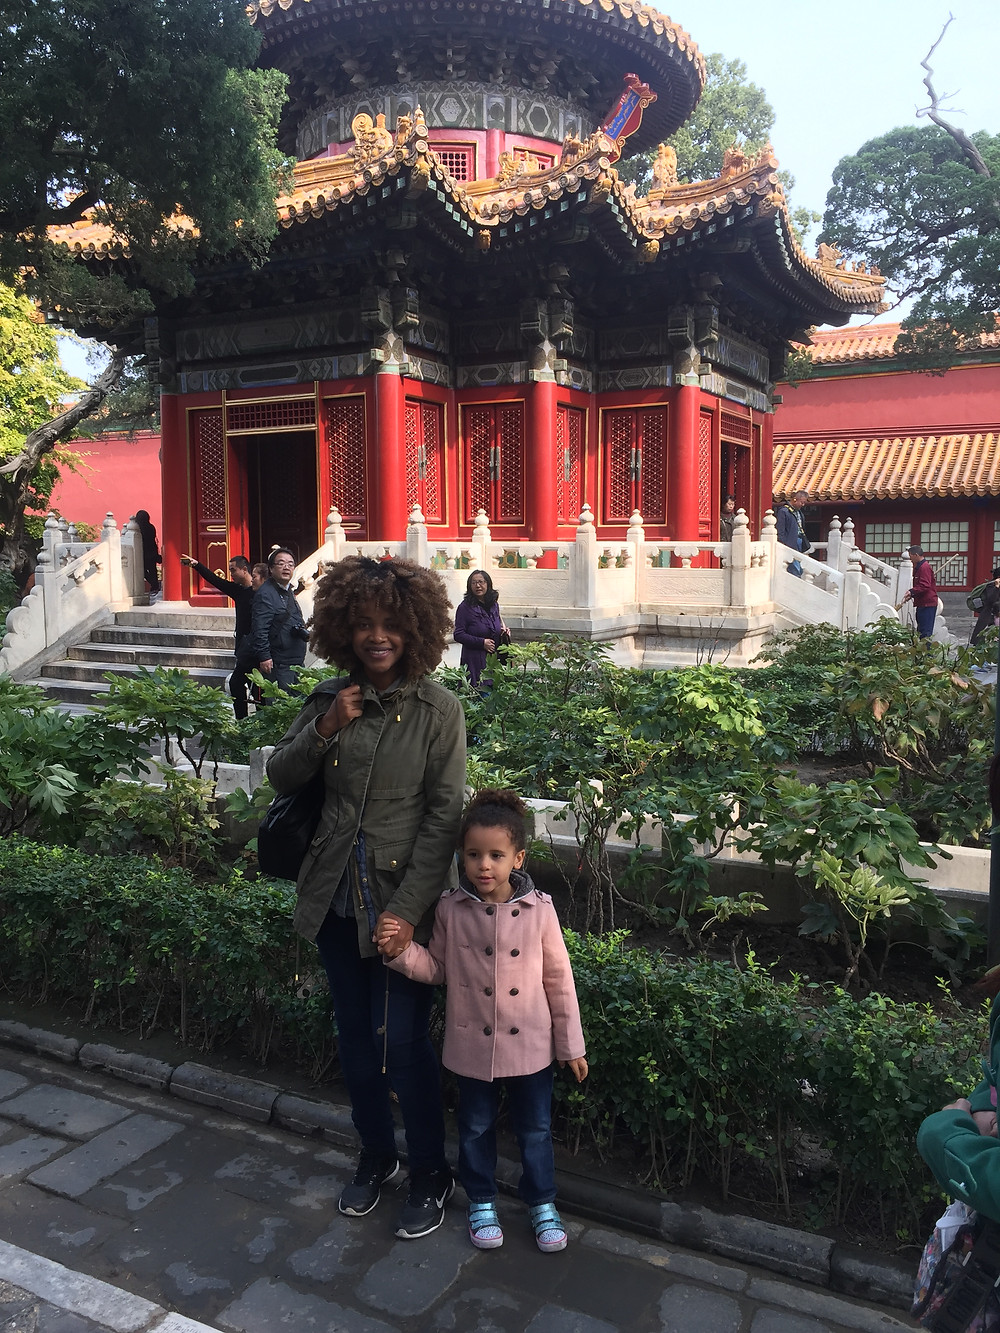 At the Imperial Garden